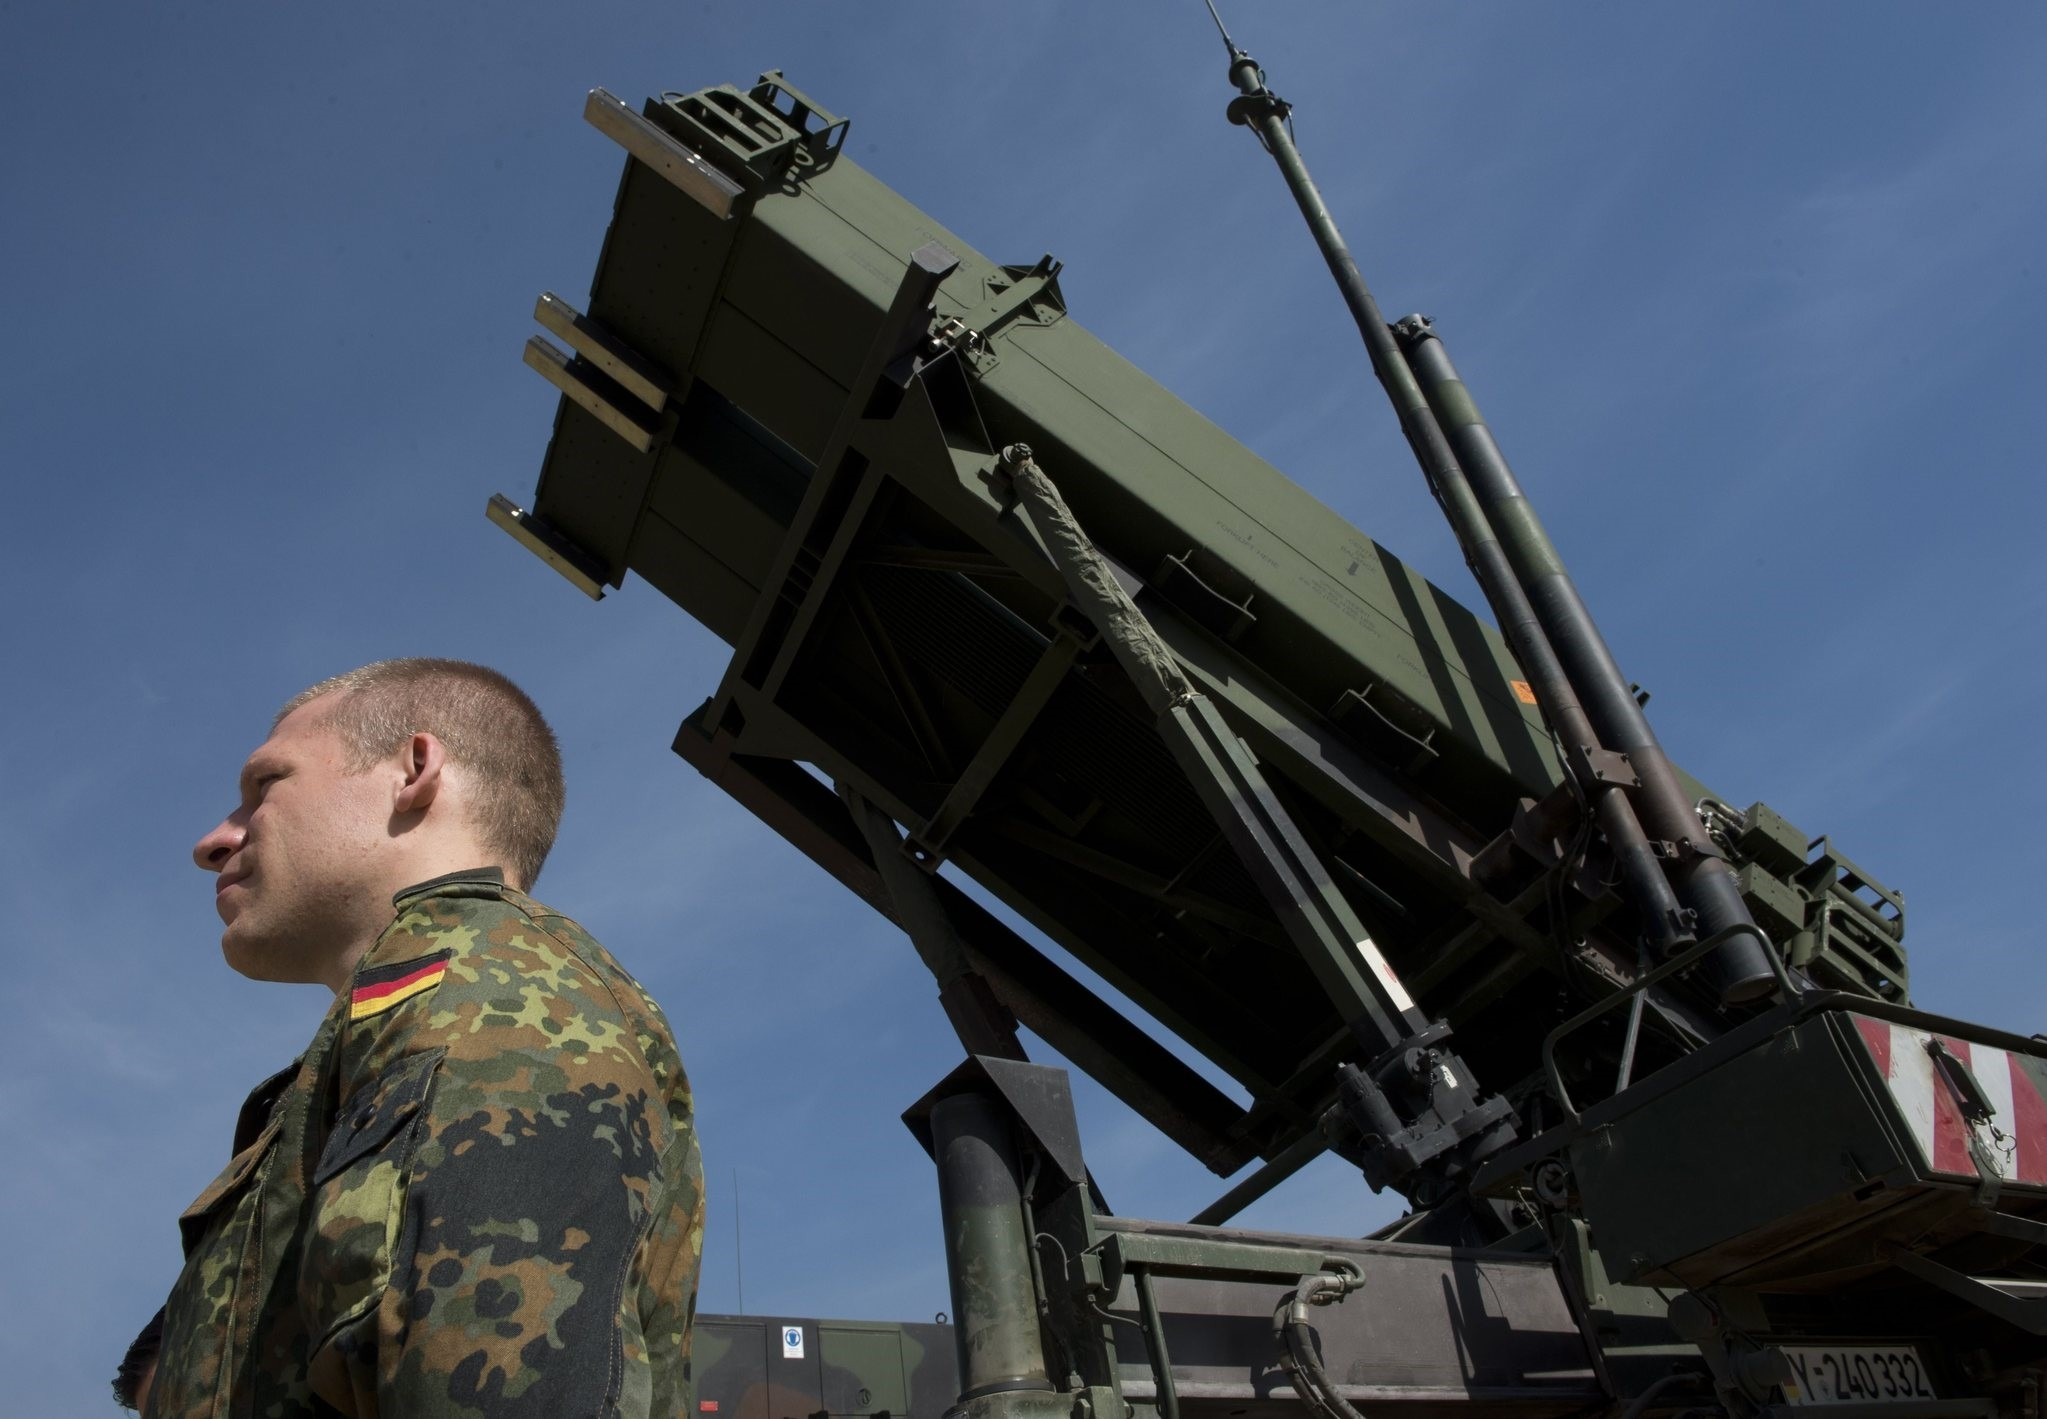 Picturen taken on March 25, 2014, shows a German soldier standing to attention in front of a German Patriot missile launcher at the Gazi barracks in Kahramanmarau015f, southern Turkey. (AFP Photo)